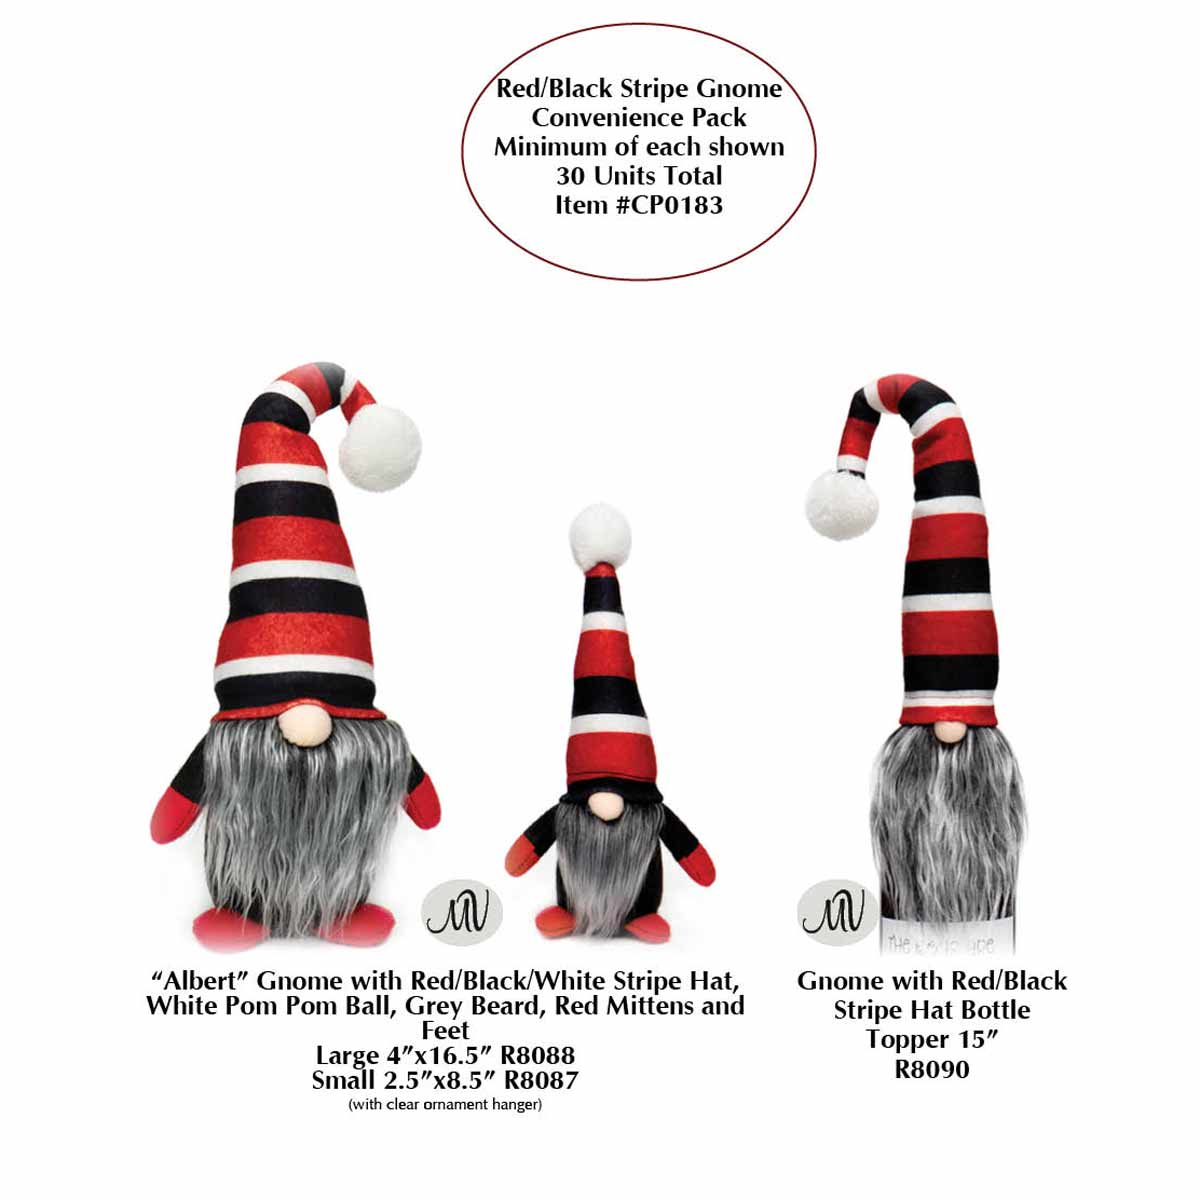 RED/BLACK STRIPE GNOME CONVENIENCE PACK 30 UNITS